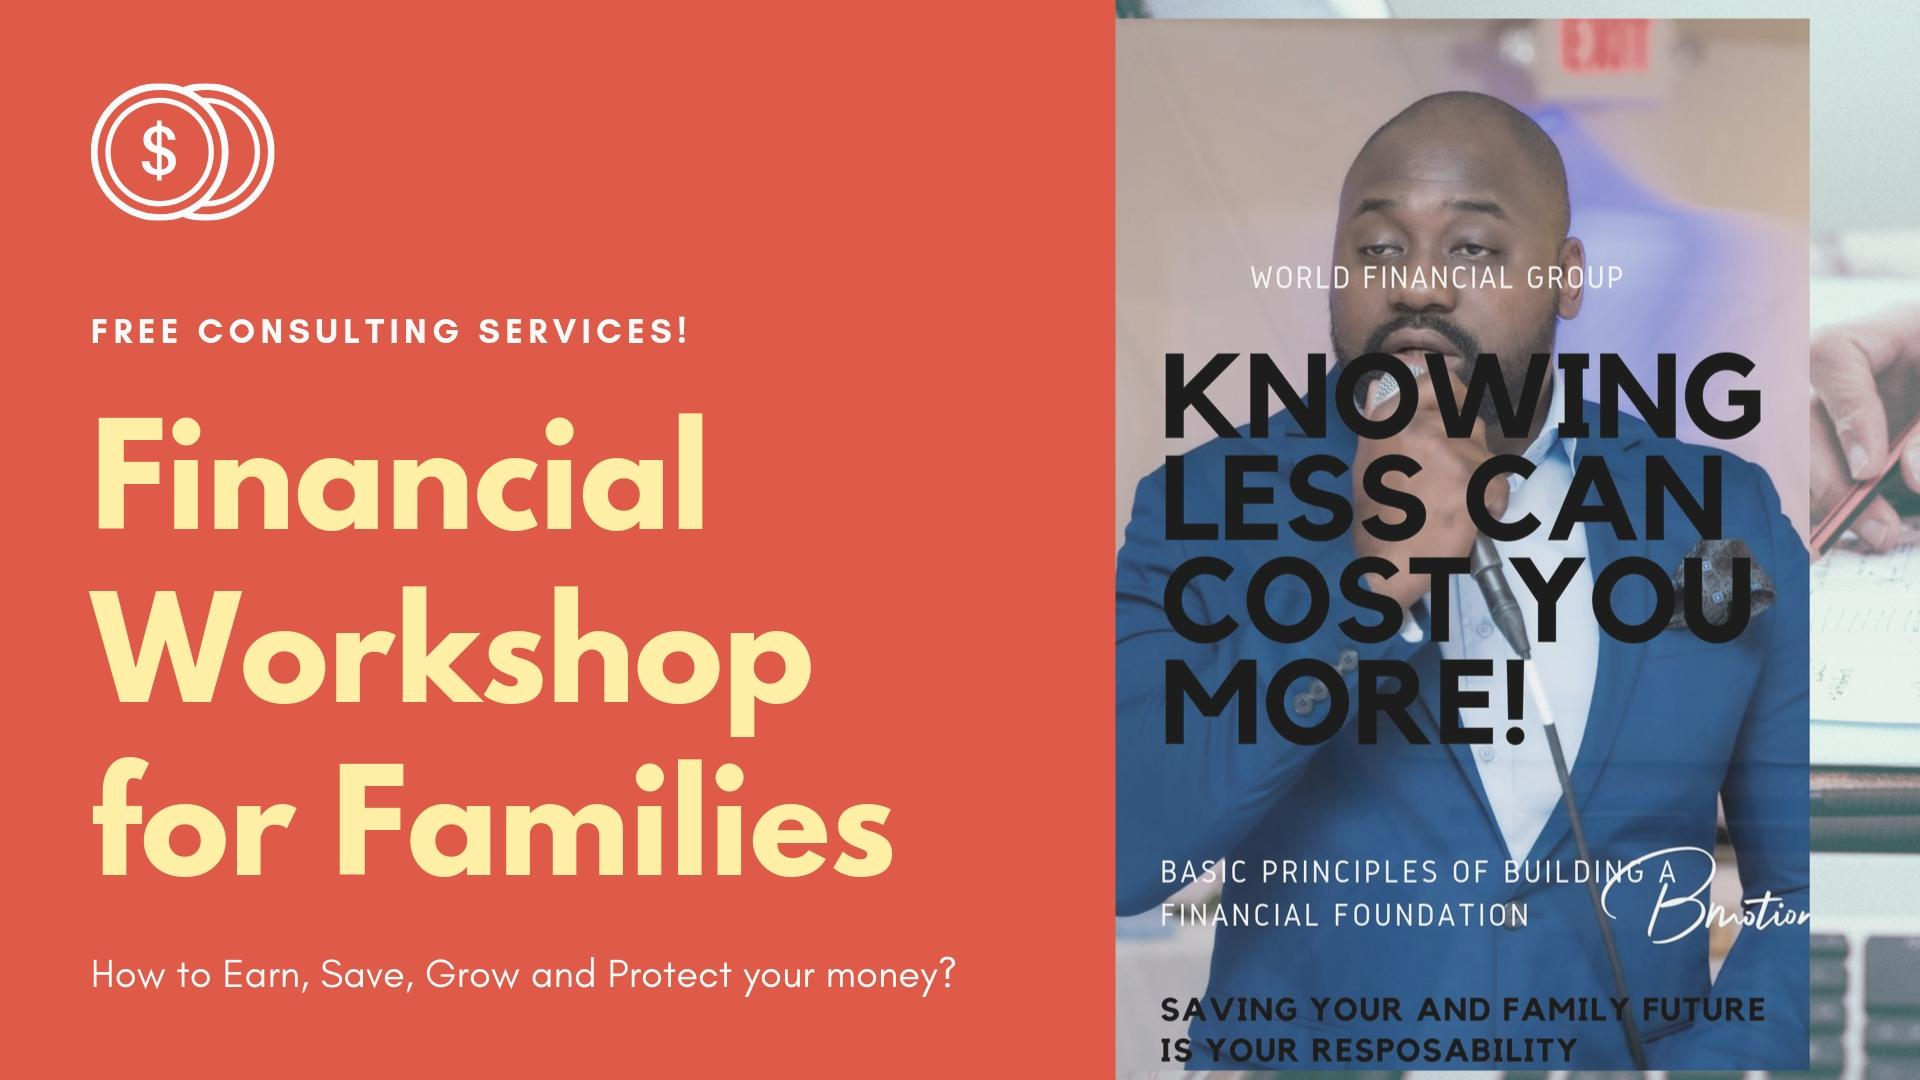 LEARN HOW MONEY WORKS - FREE FINANCIAL EDUCATION!